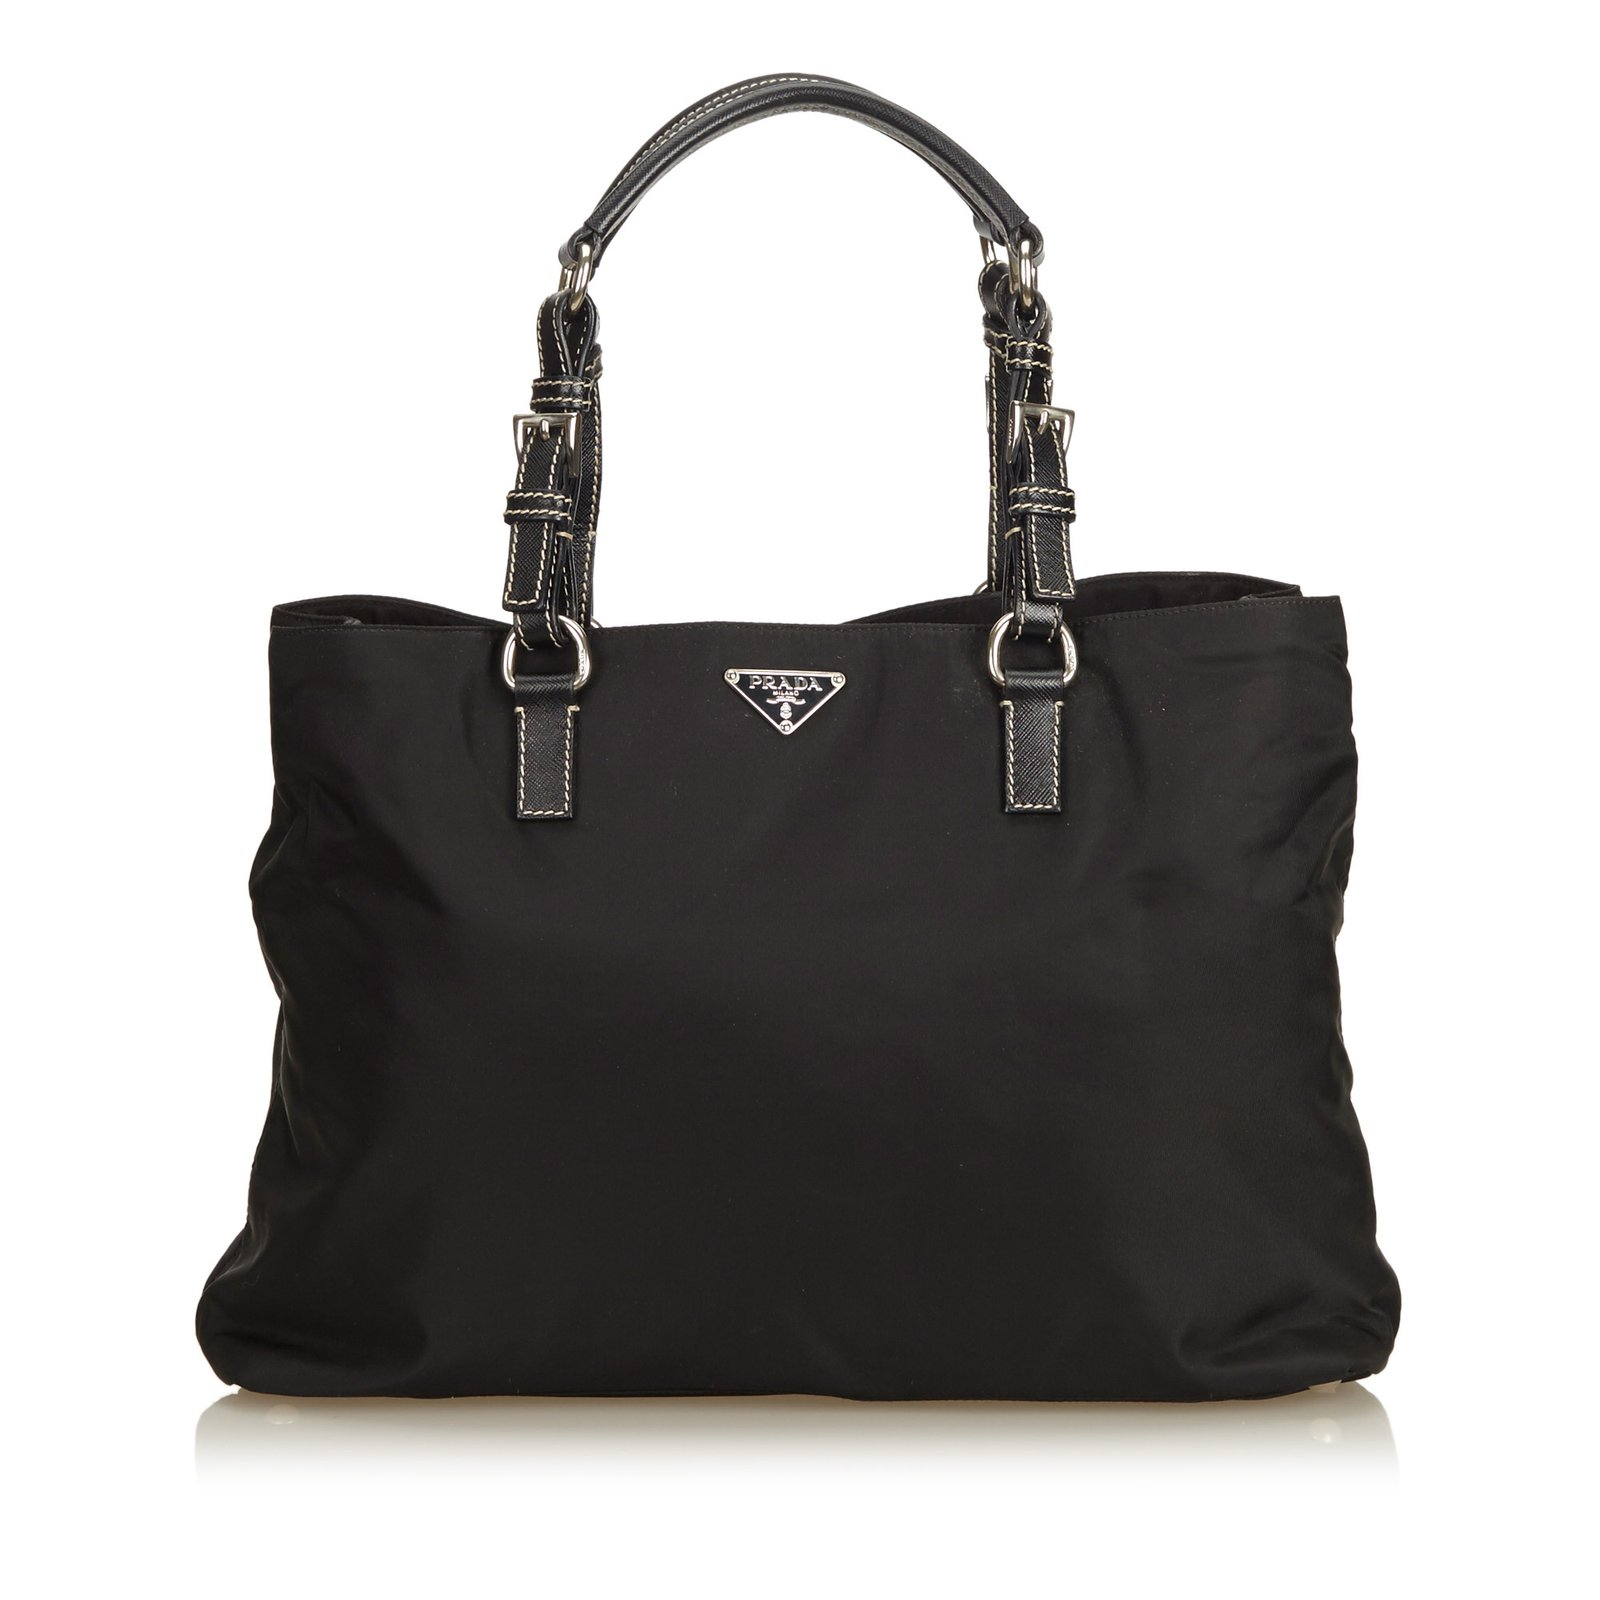 ac45e2f5f27f Prada Nylon Tote Bag Handbags Leather,Other,Nylon,Cloth Black ref.89761